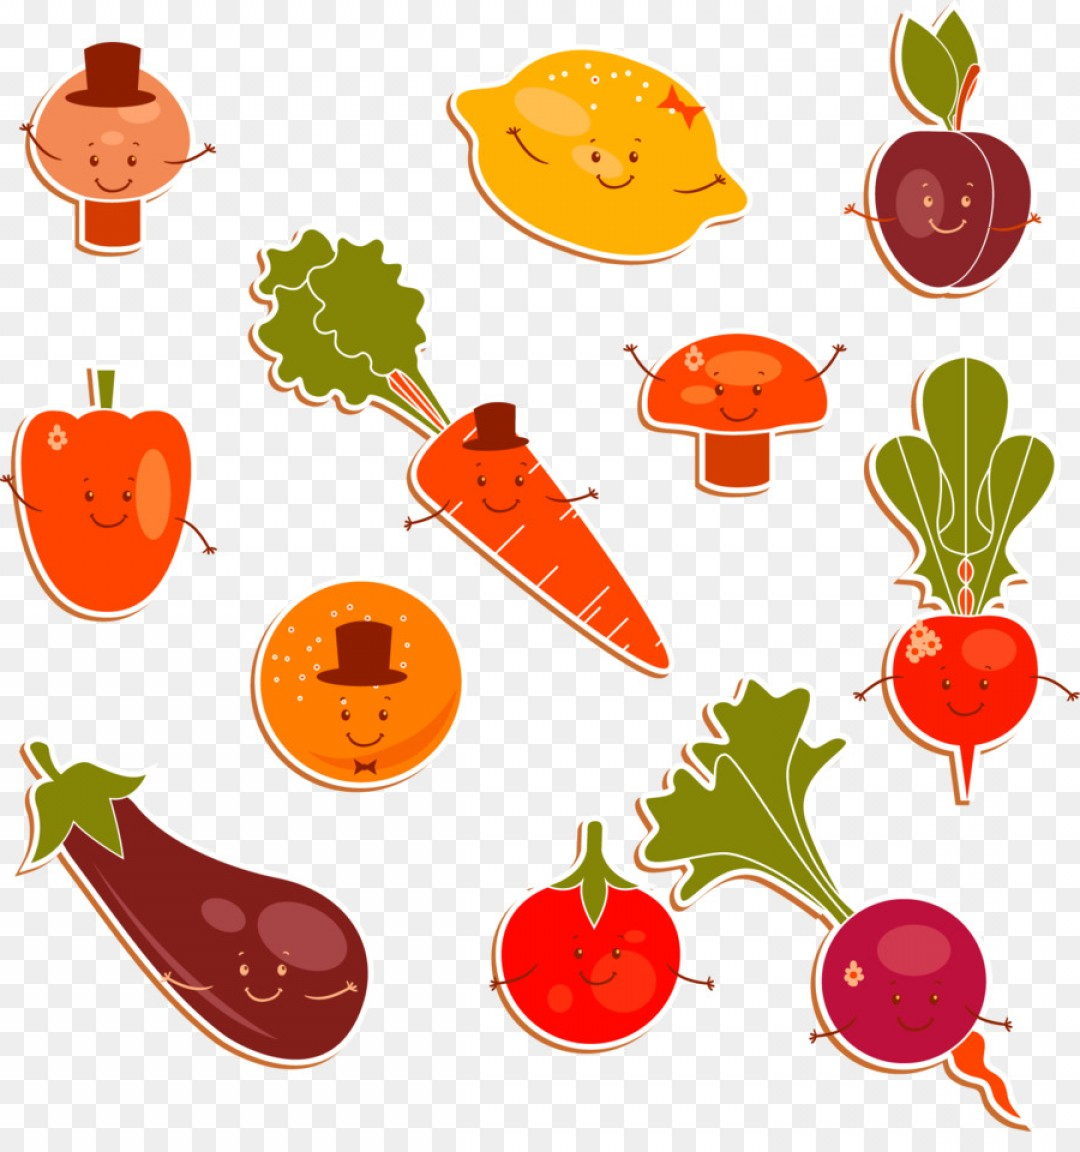 Vector Fruit Vegetable: Png Tomato Fruit Clip Art Vector Cute Vegetables Patte